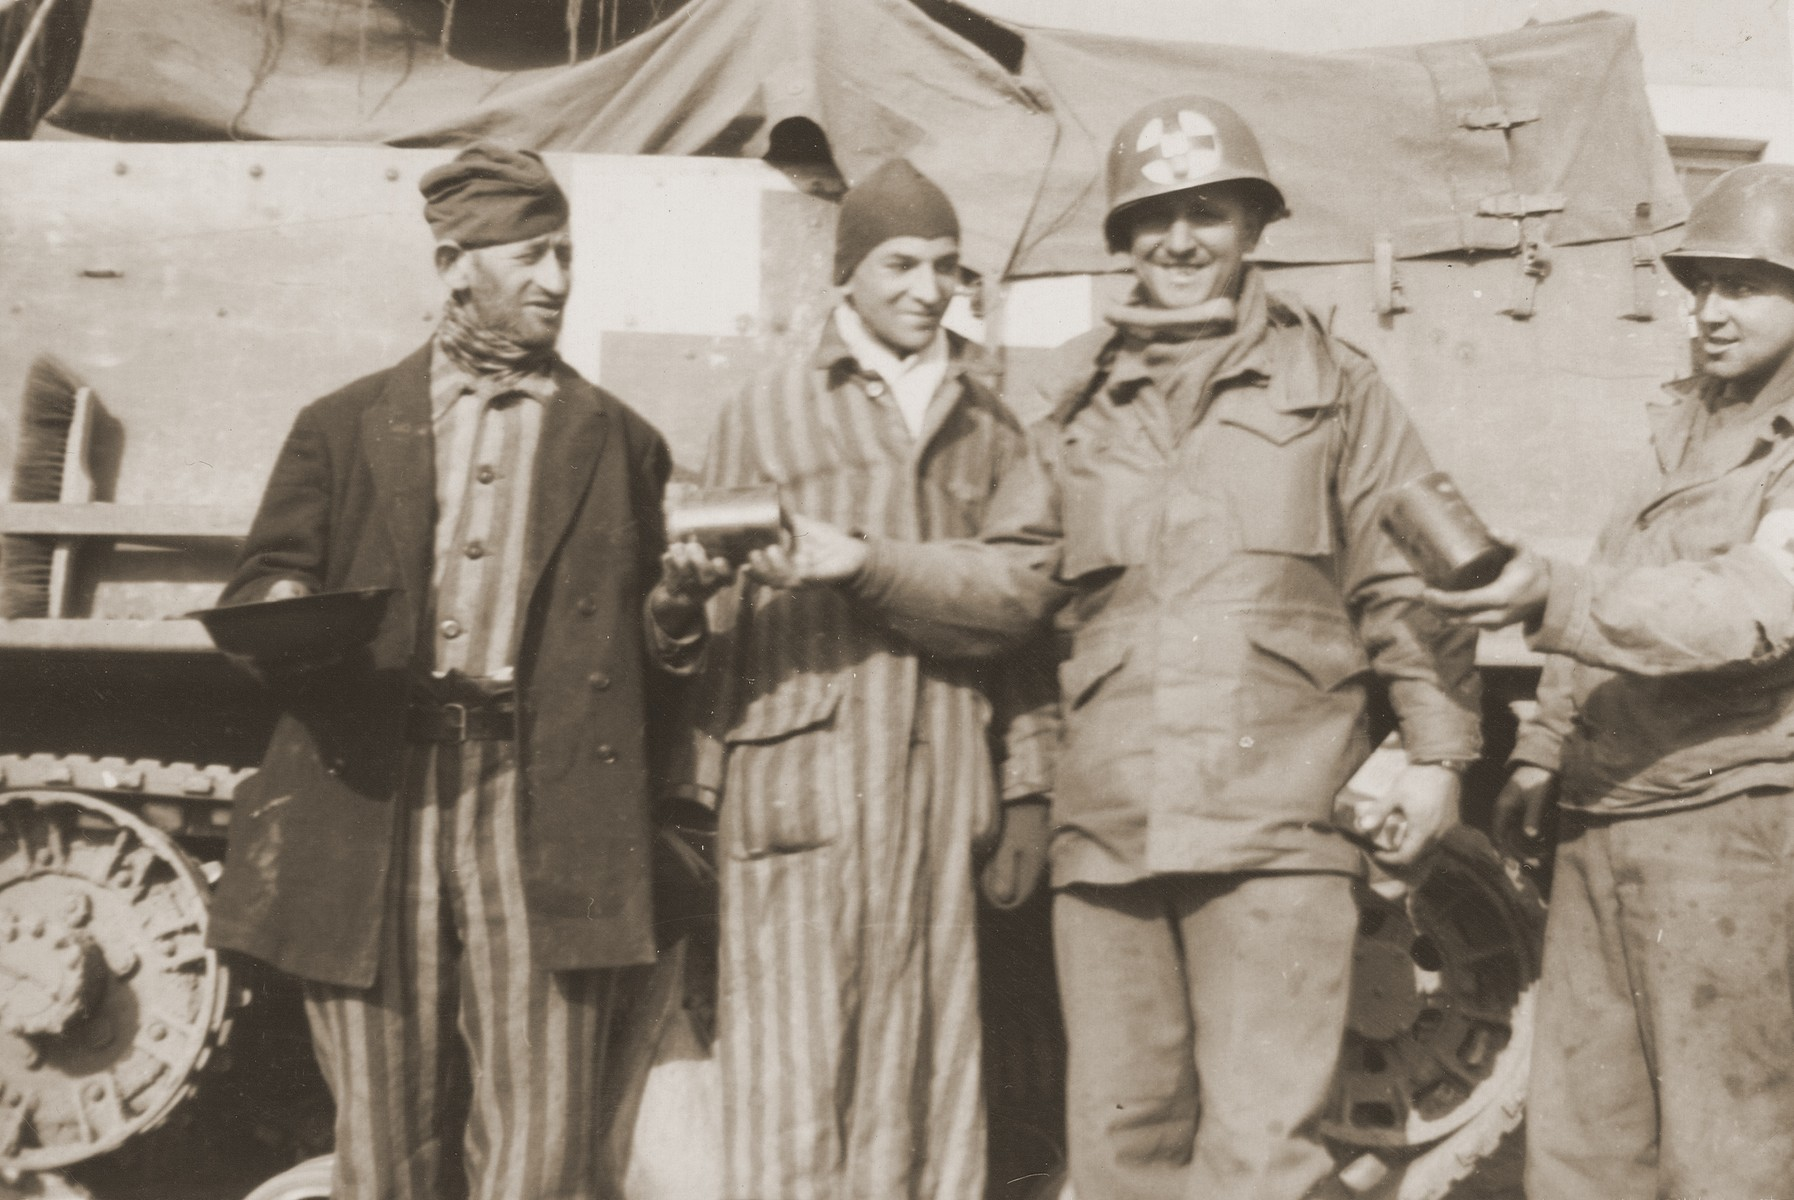 U.S. Army medical personnel with the 10th Armored Division distribute food to two survivors liberated from a concentration camp.    The man in the center is Technical Sergeant George Delmonica.